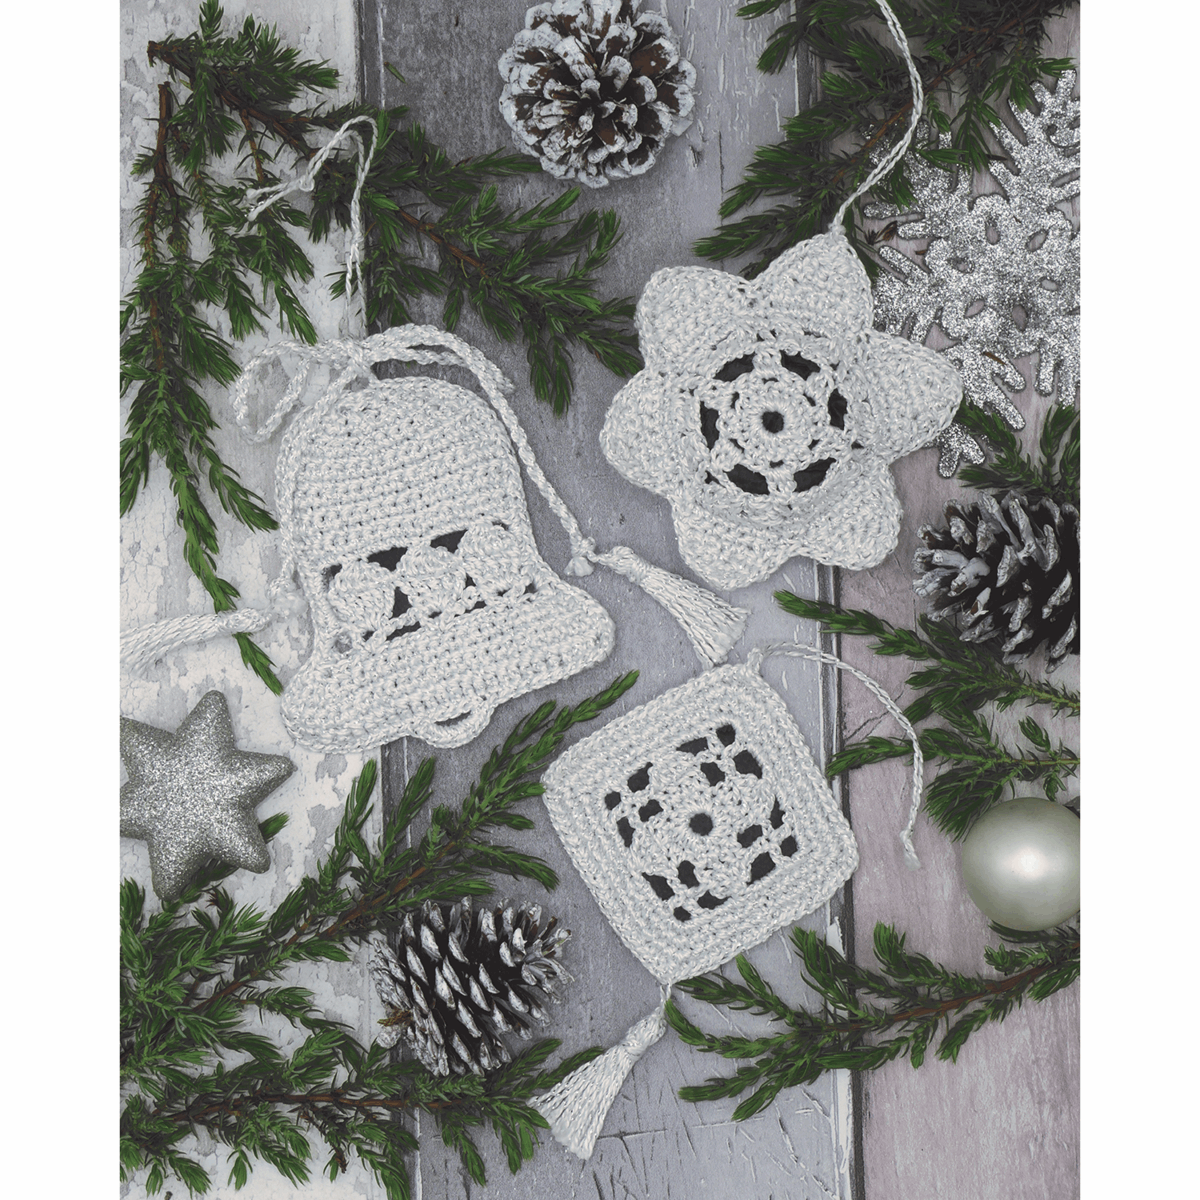 Picture of Crochet Kit: Christmas Tree Decorations: White